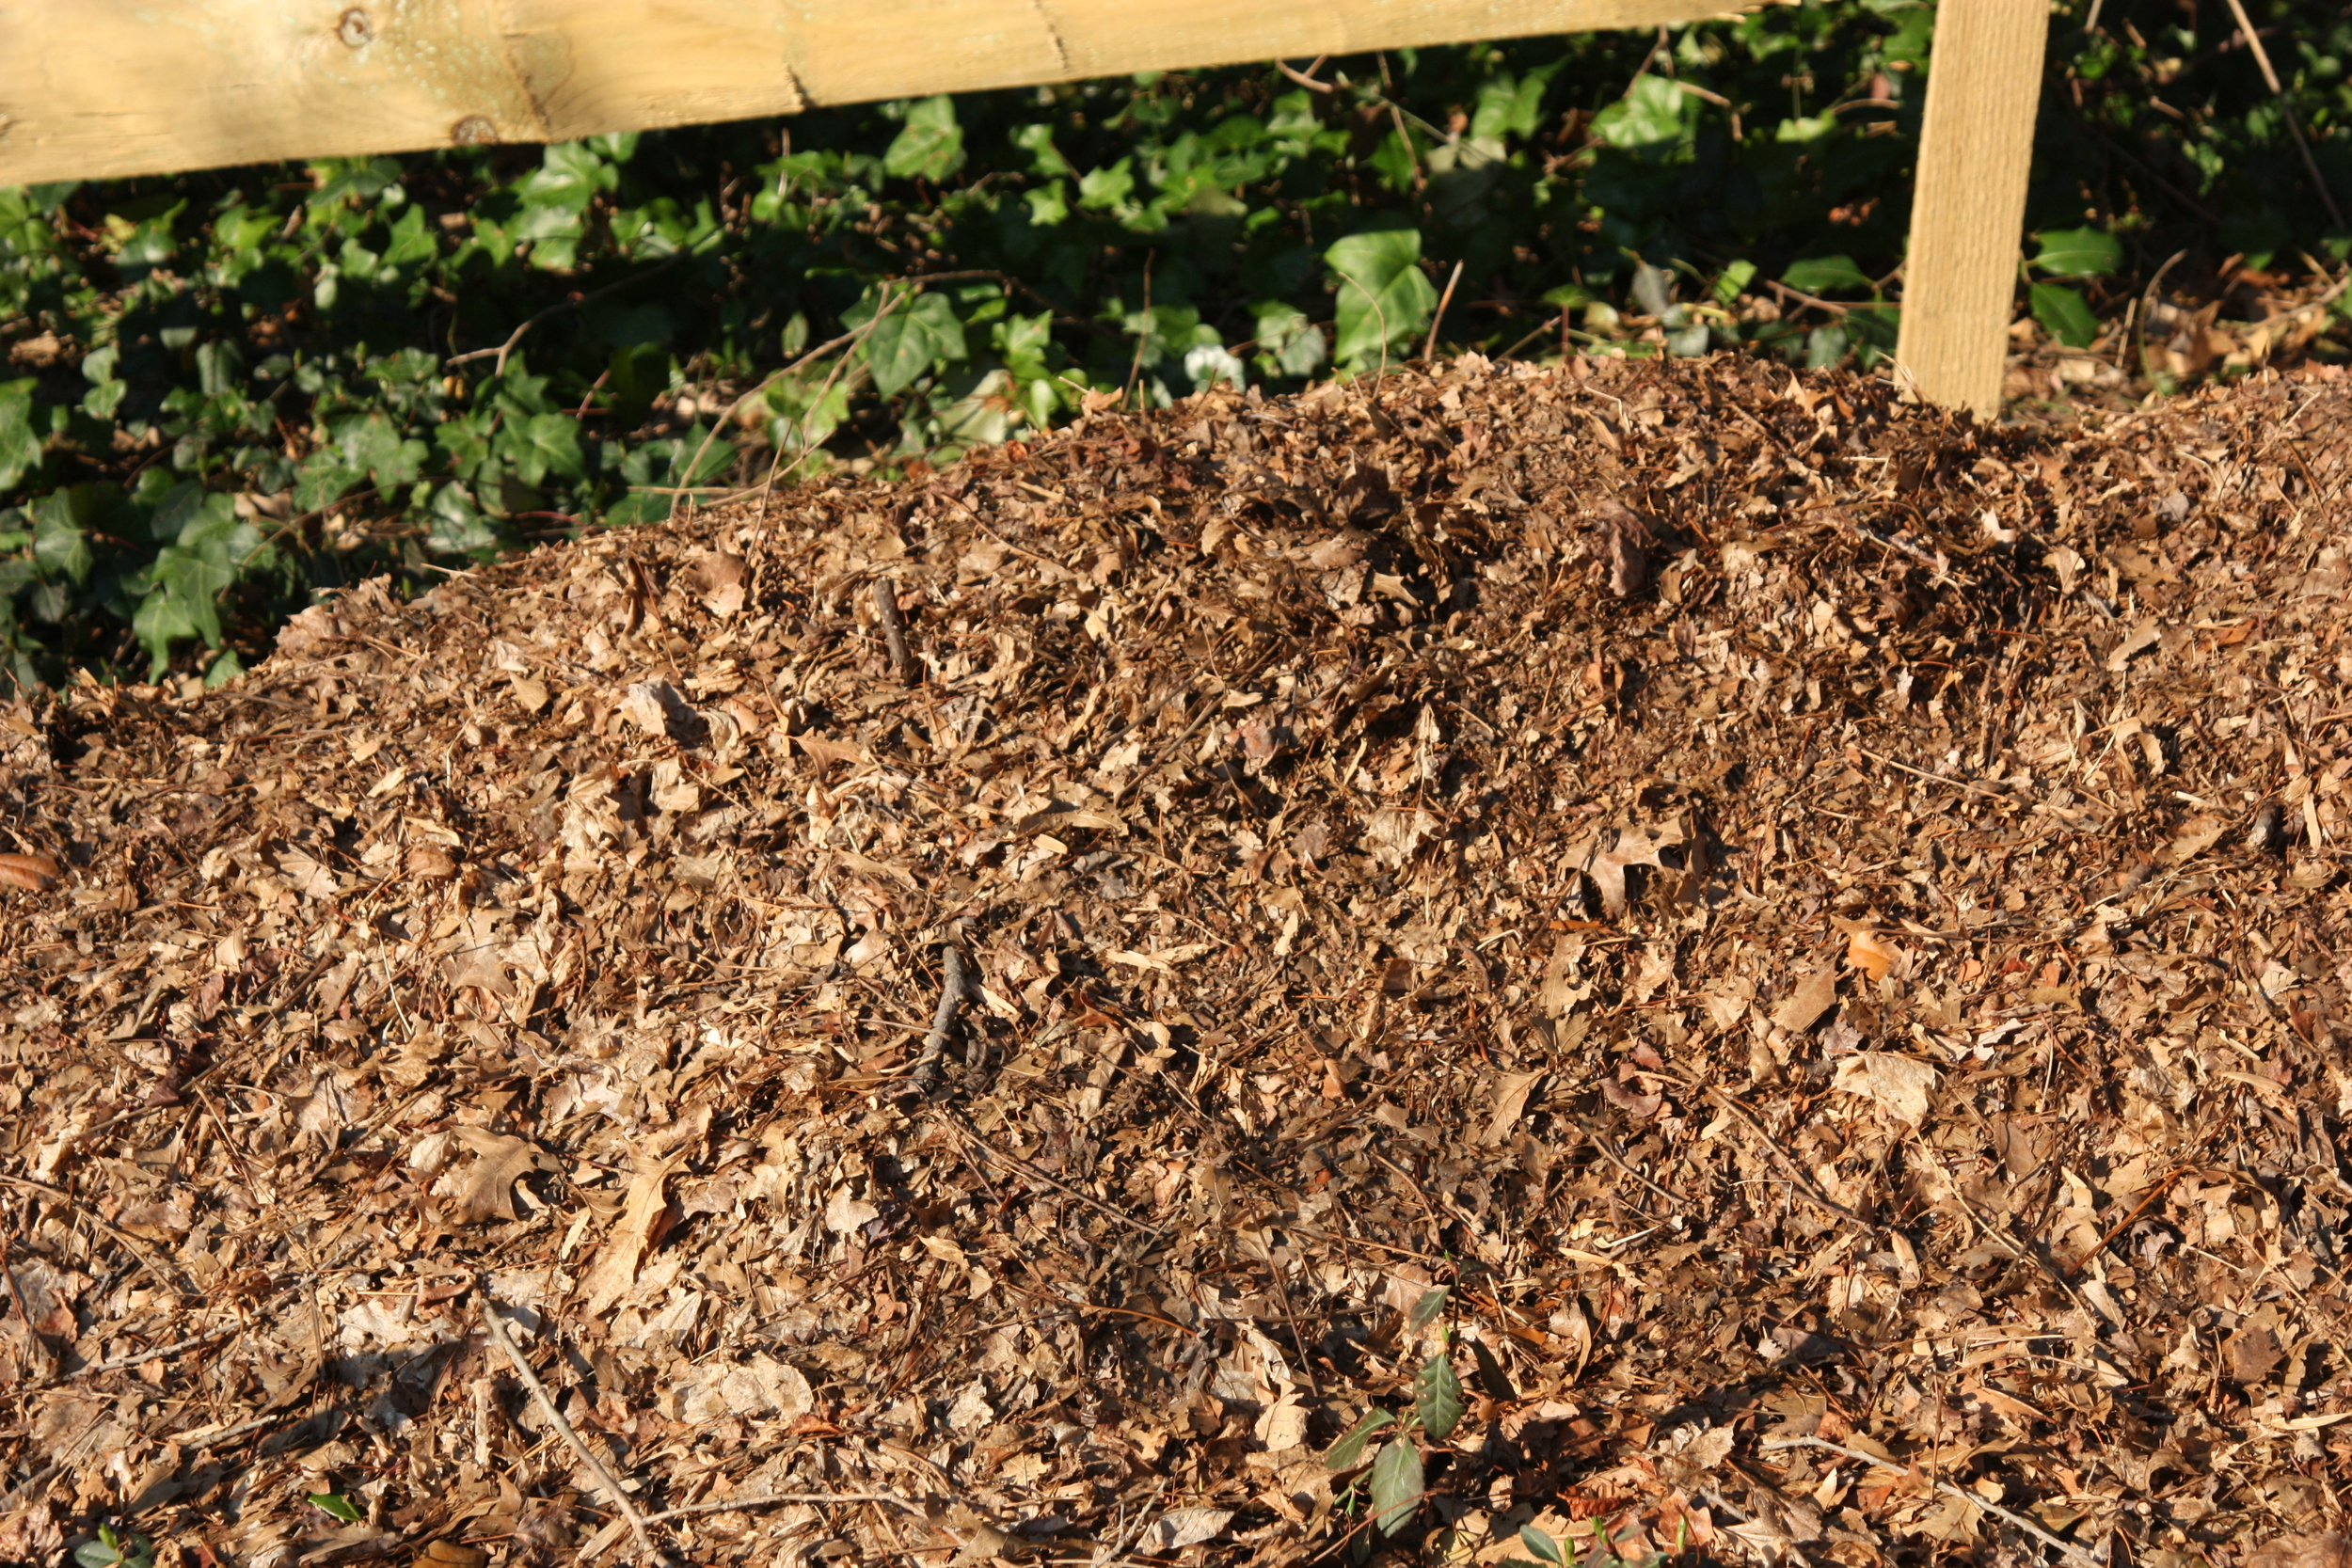 These chopped leaves collected in fall will convert to functional, attractive leaf mulch by spring.